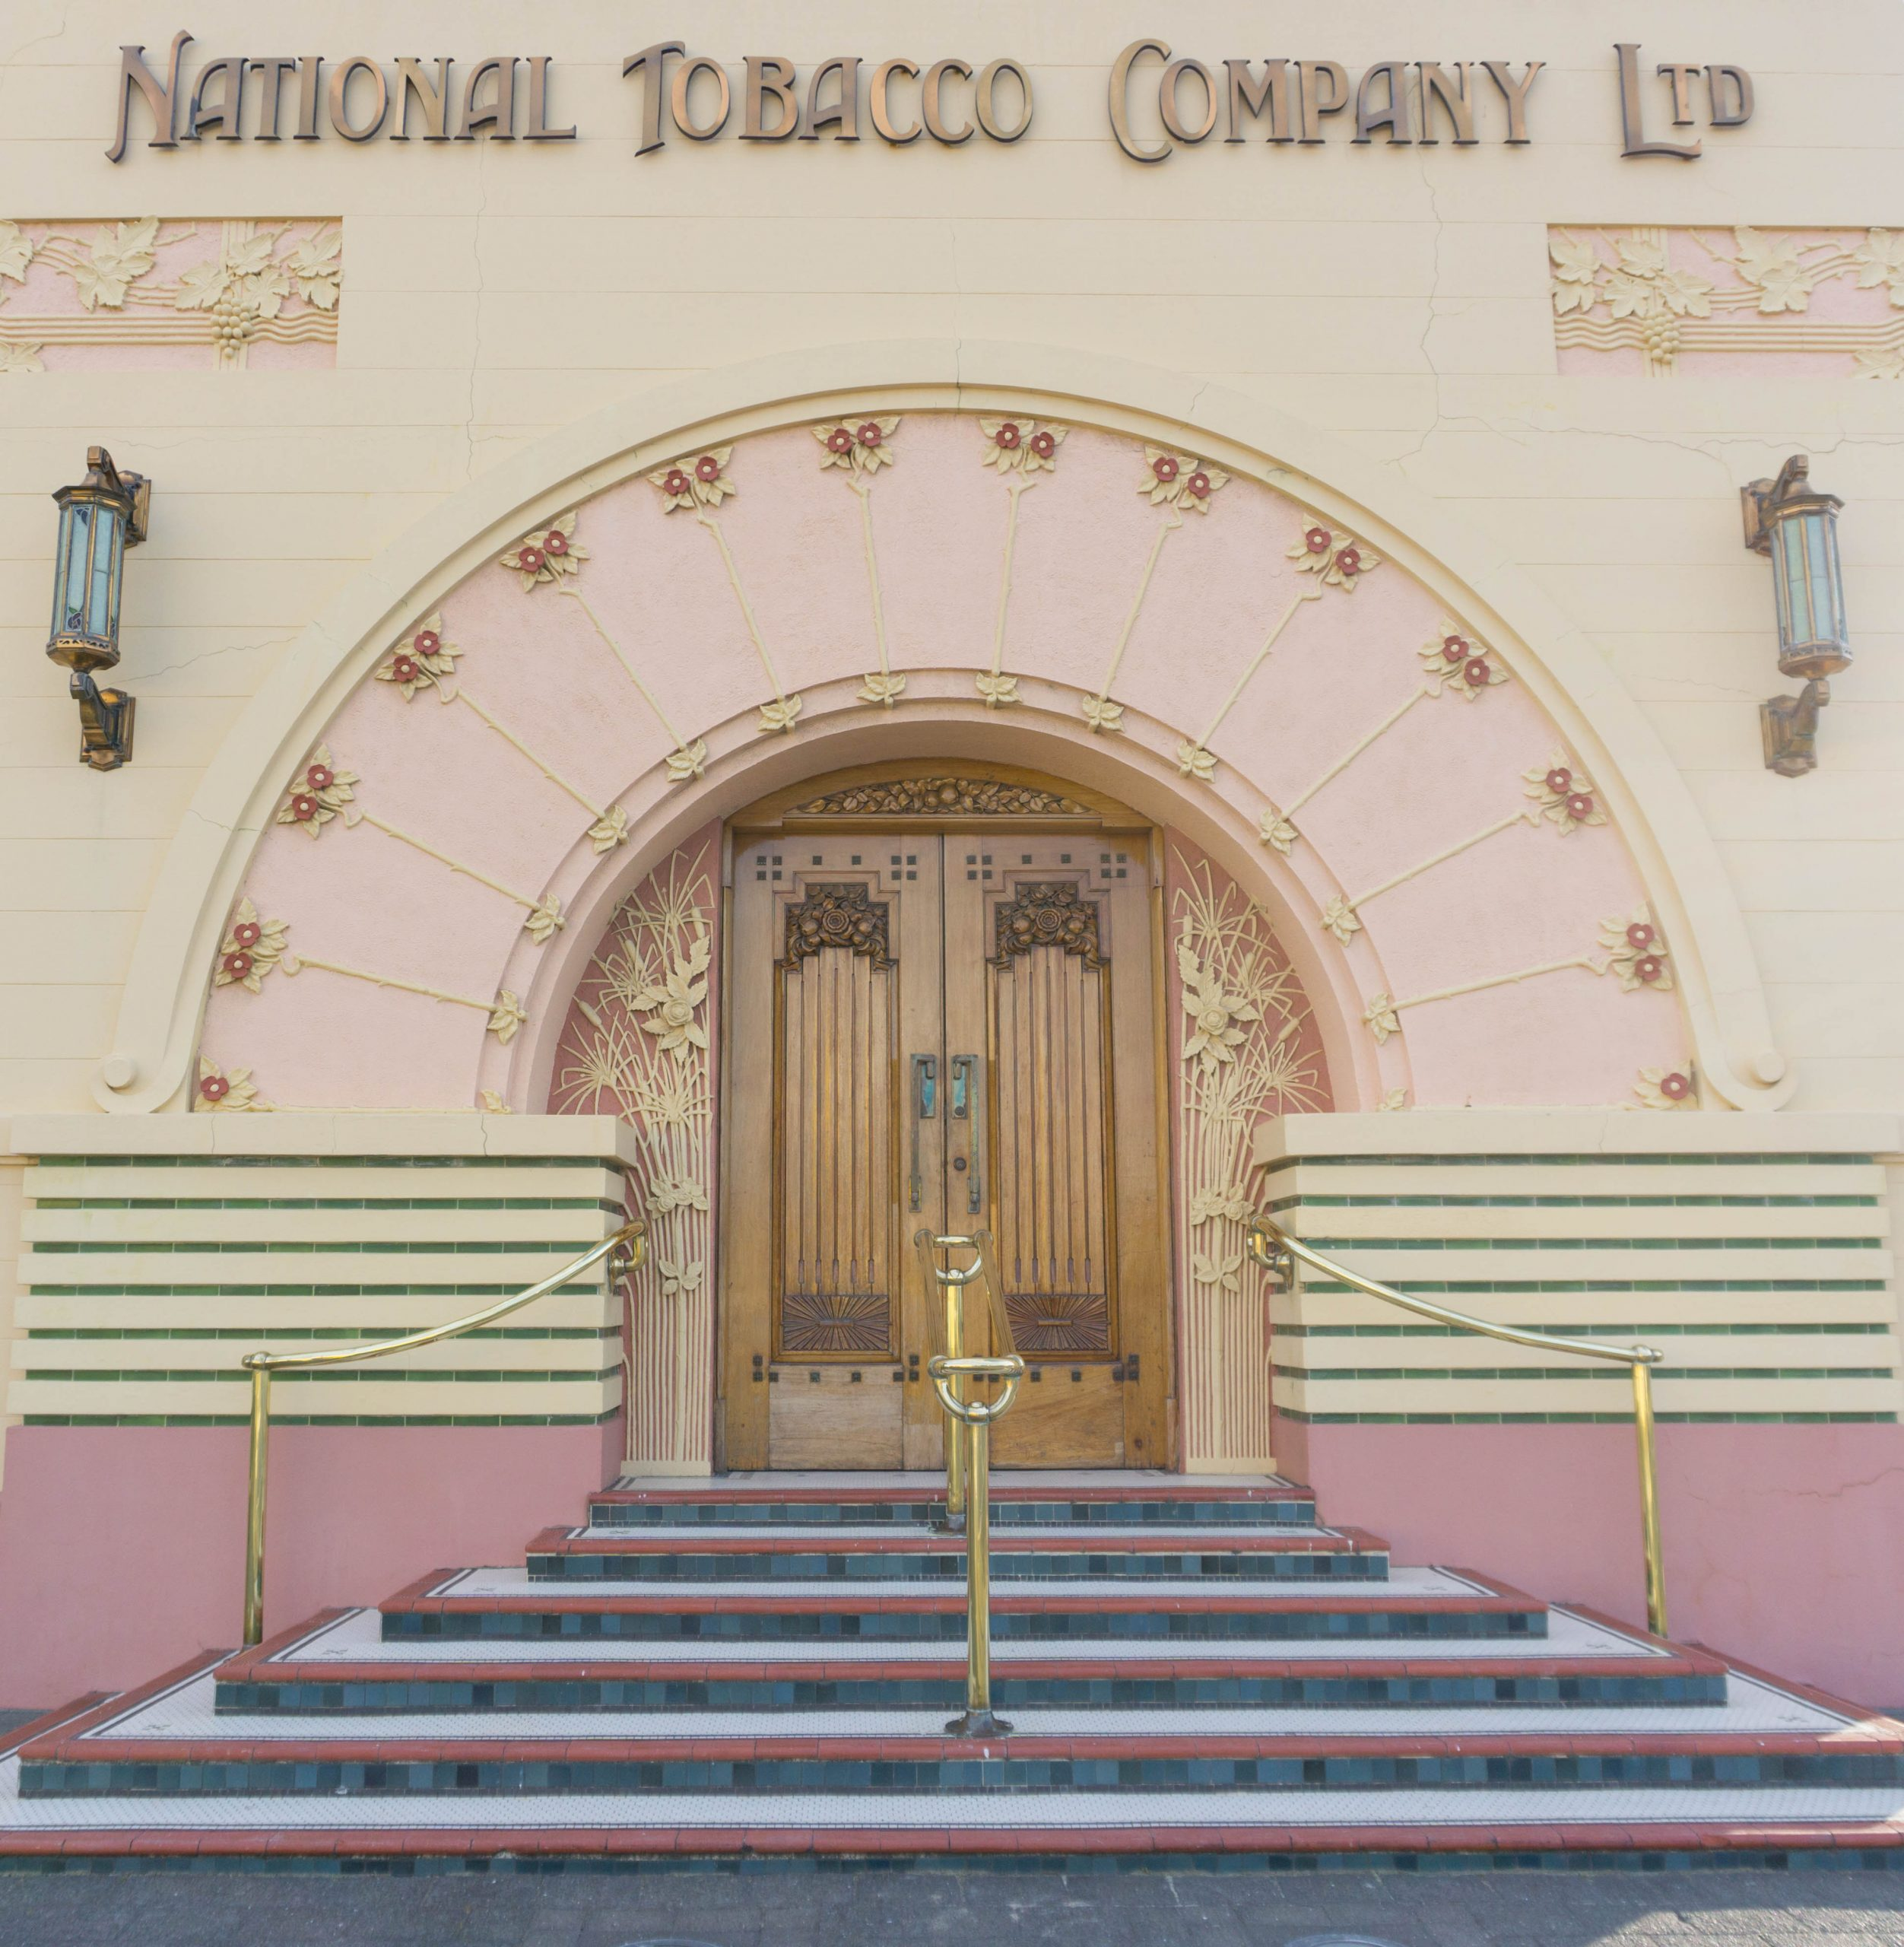 Things to do in Napier - Art Deco National Tobacco Co Building